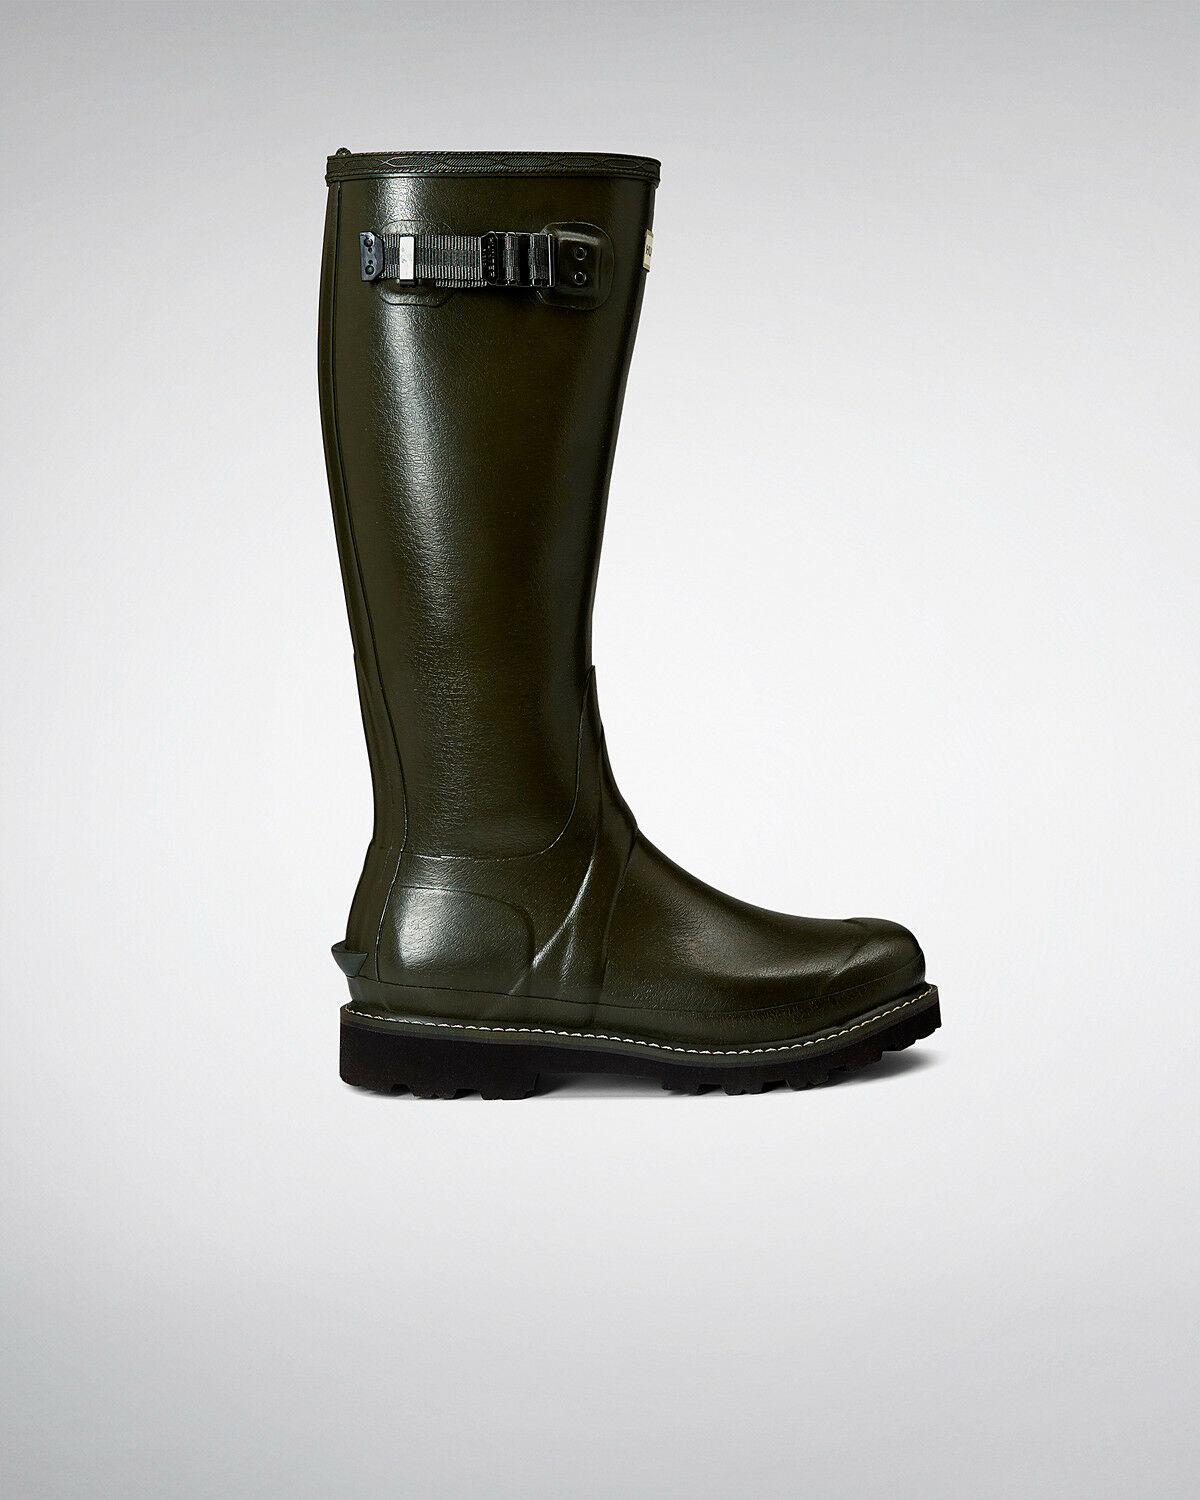 Hunter Wellington Boots Wellies Womens Balmoral Poly Lined Olive Size 8 Eu 42